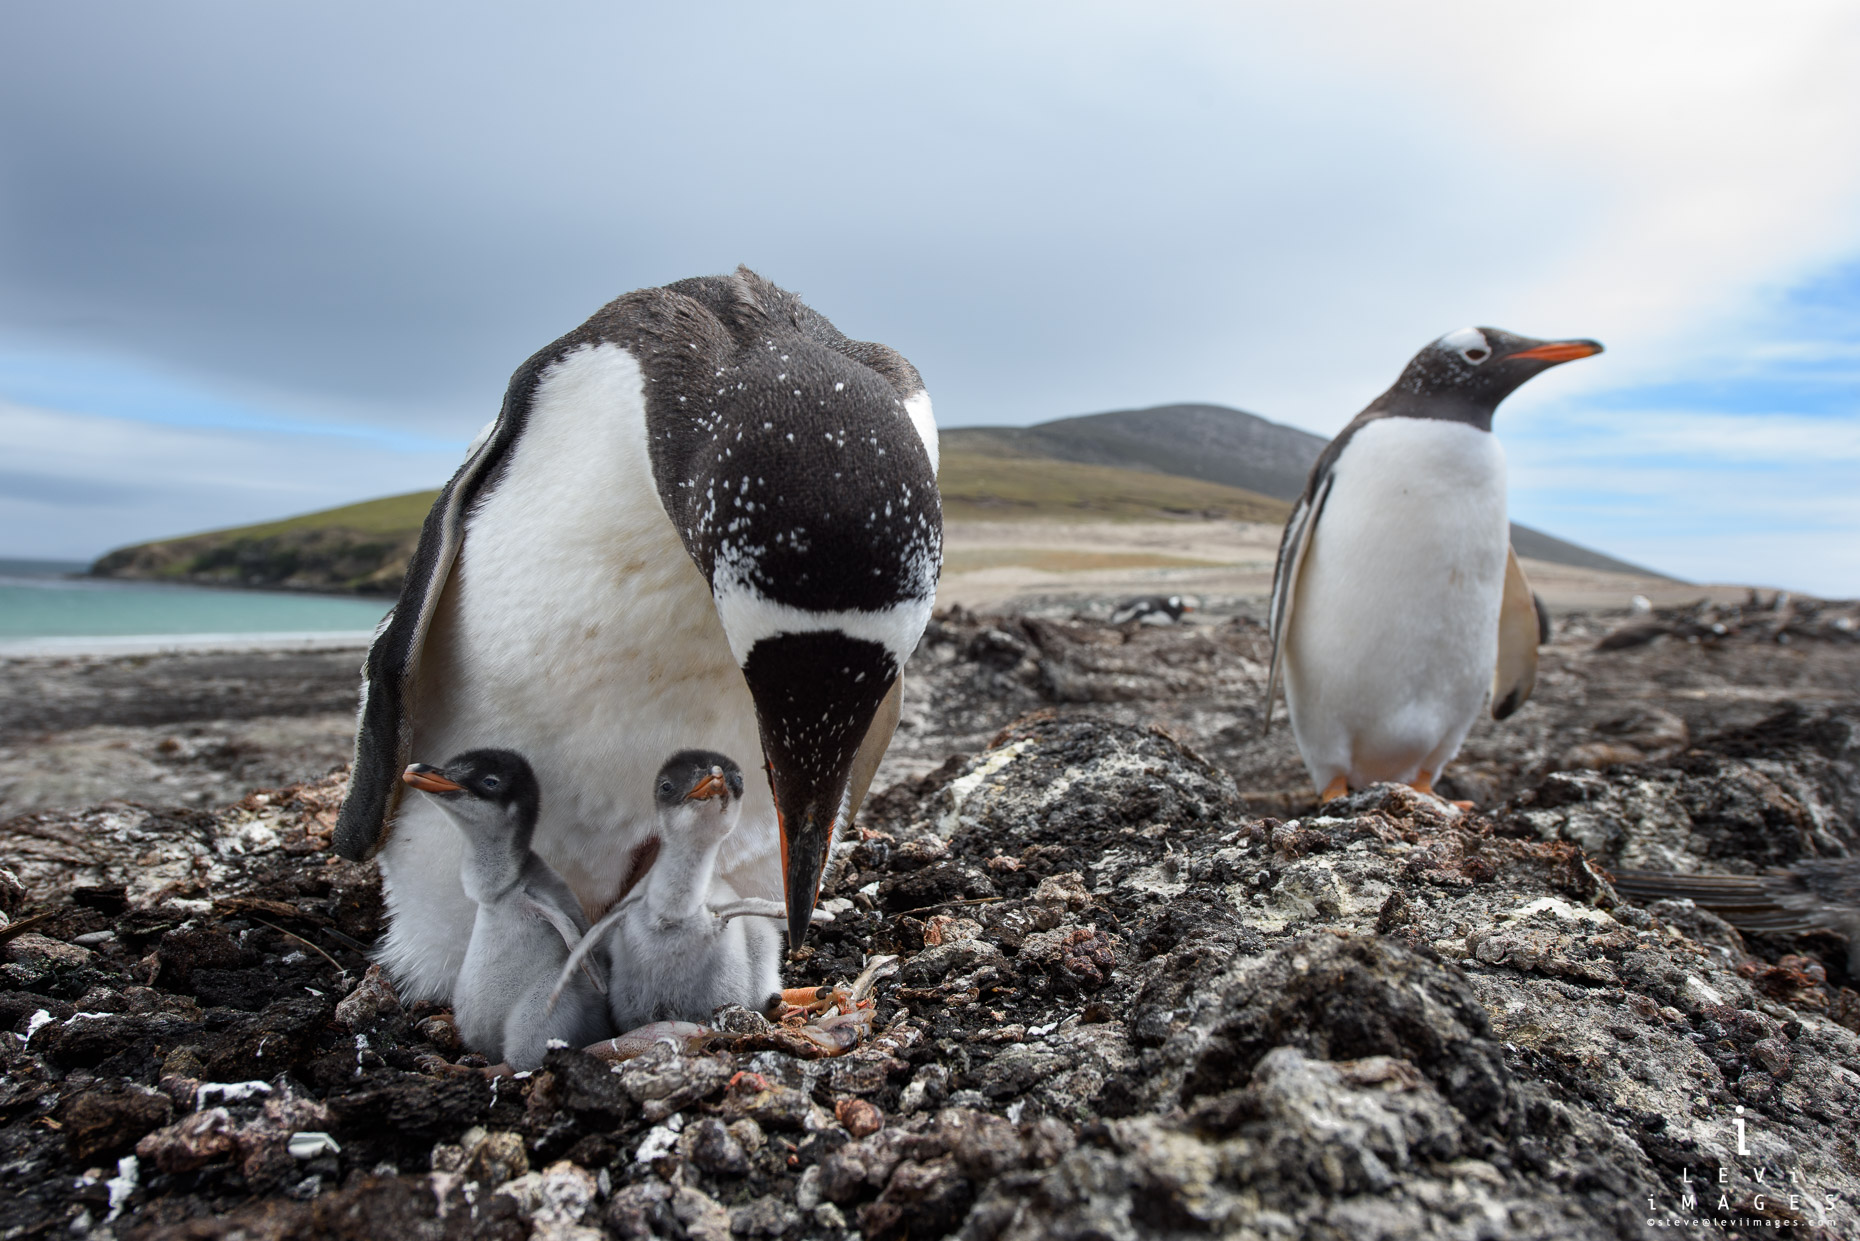 Gentoo penguin (Pygoscelis papua) and newly hatched chicks. Saunders Island, Falkland Islands